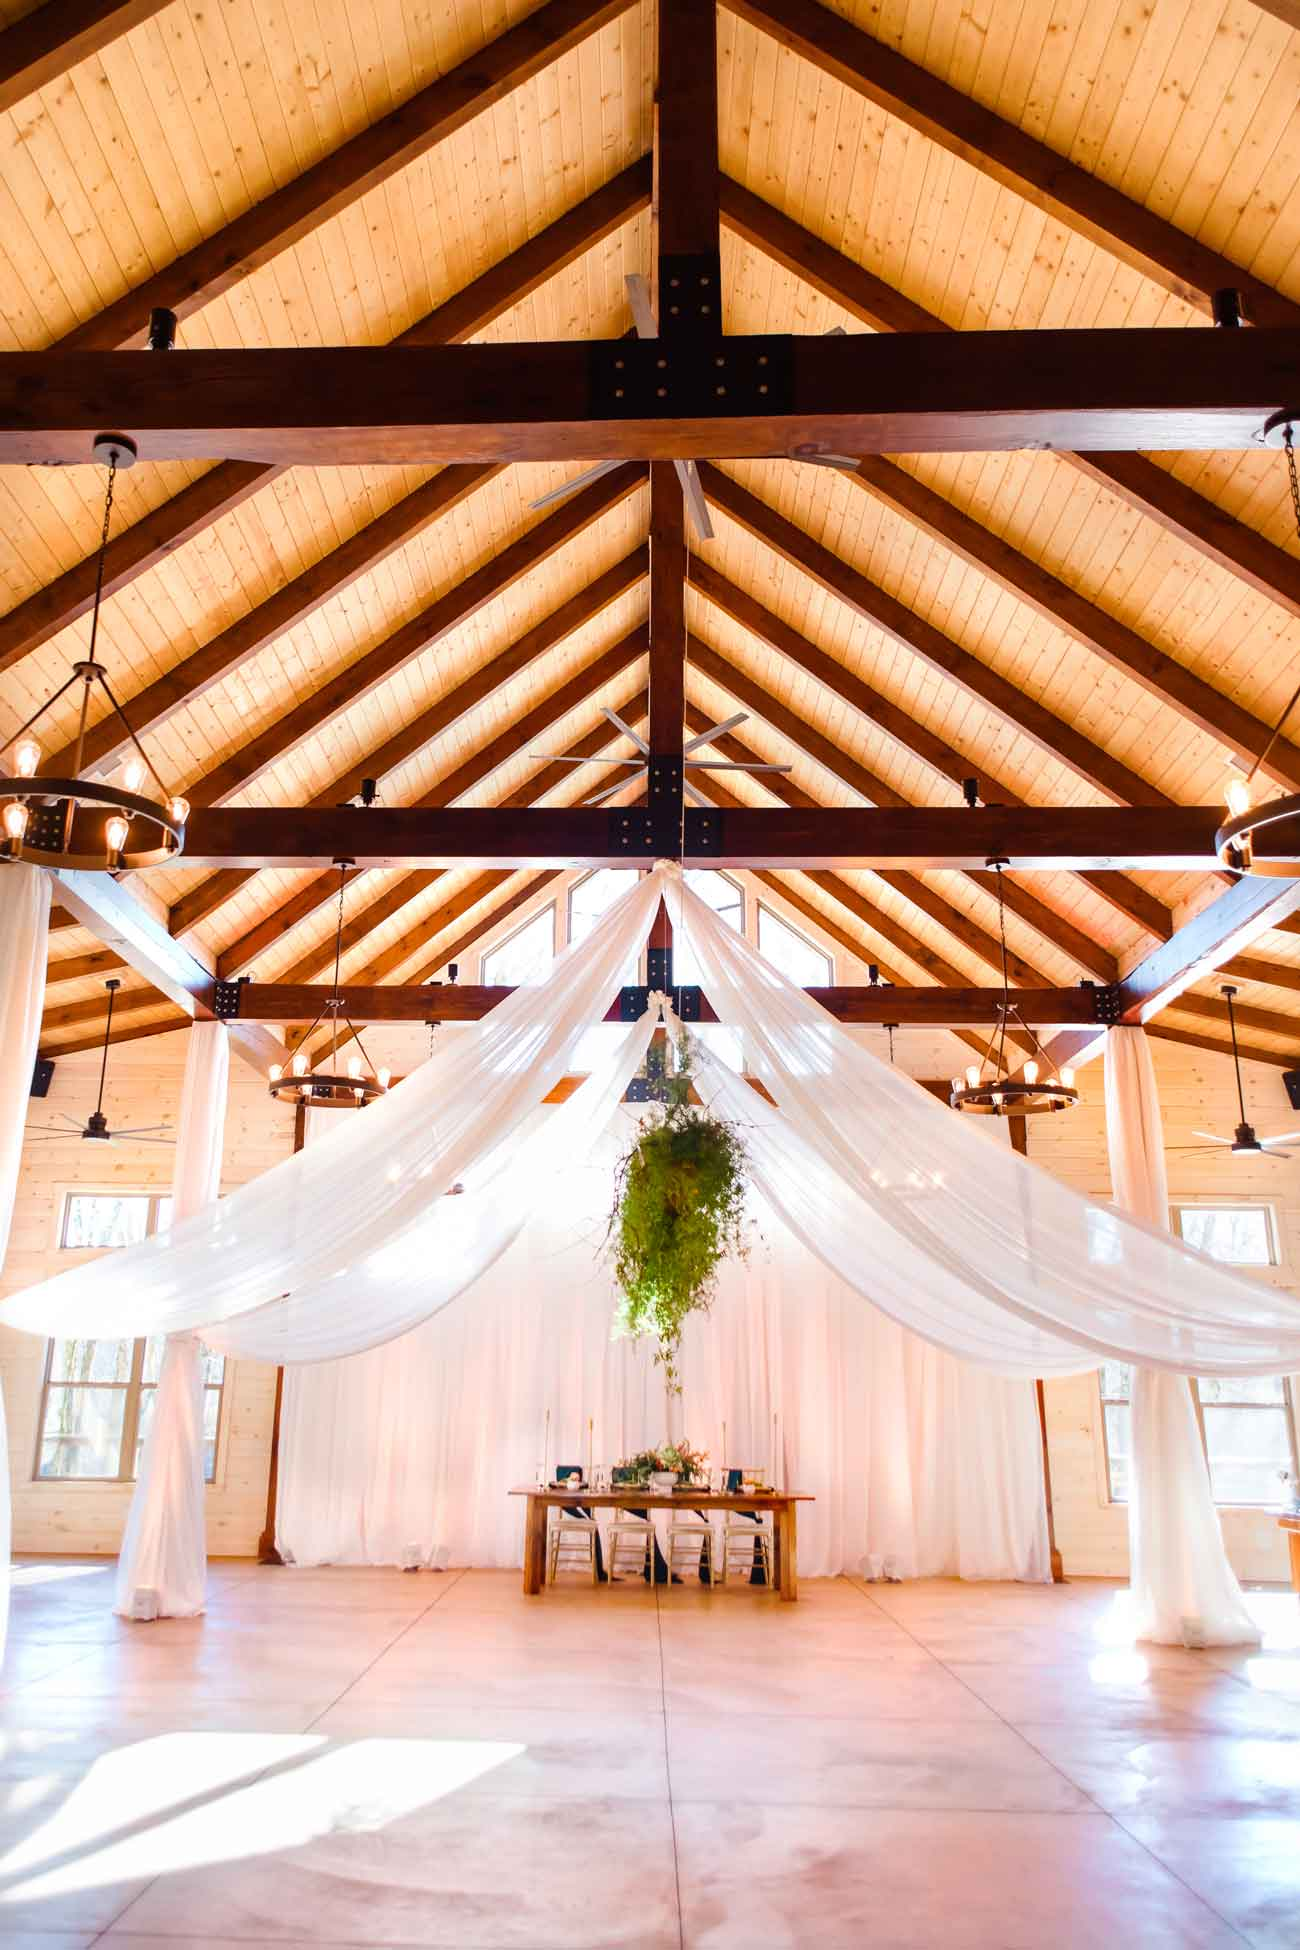 Interior of hiwassee river weddings transformed to peach and white with draping and uplighing along with hanging greenery.